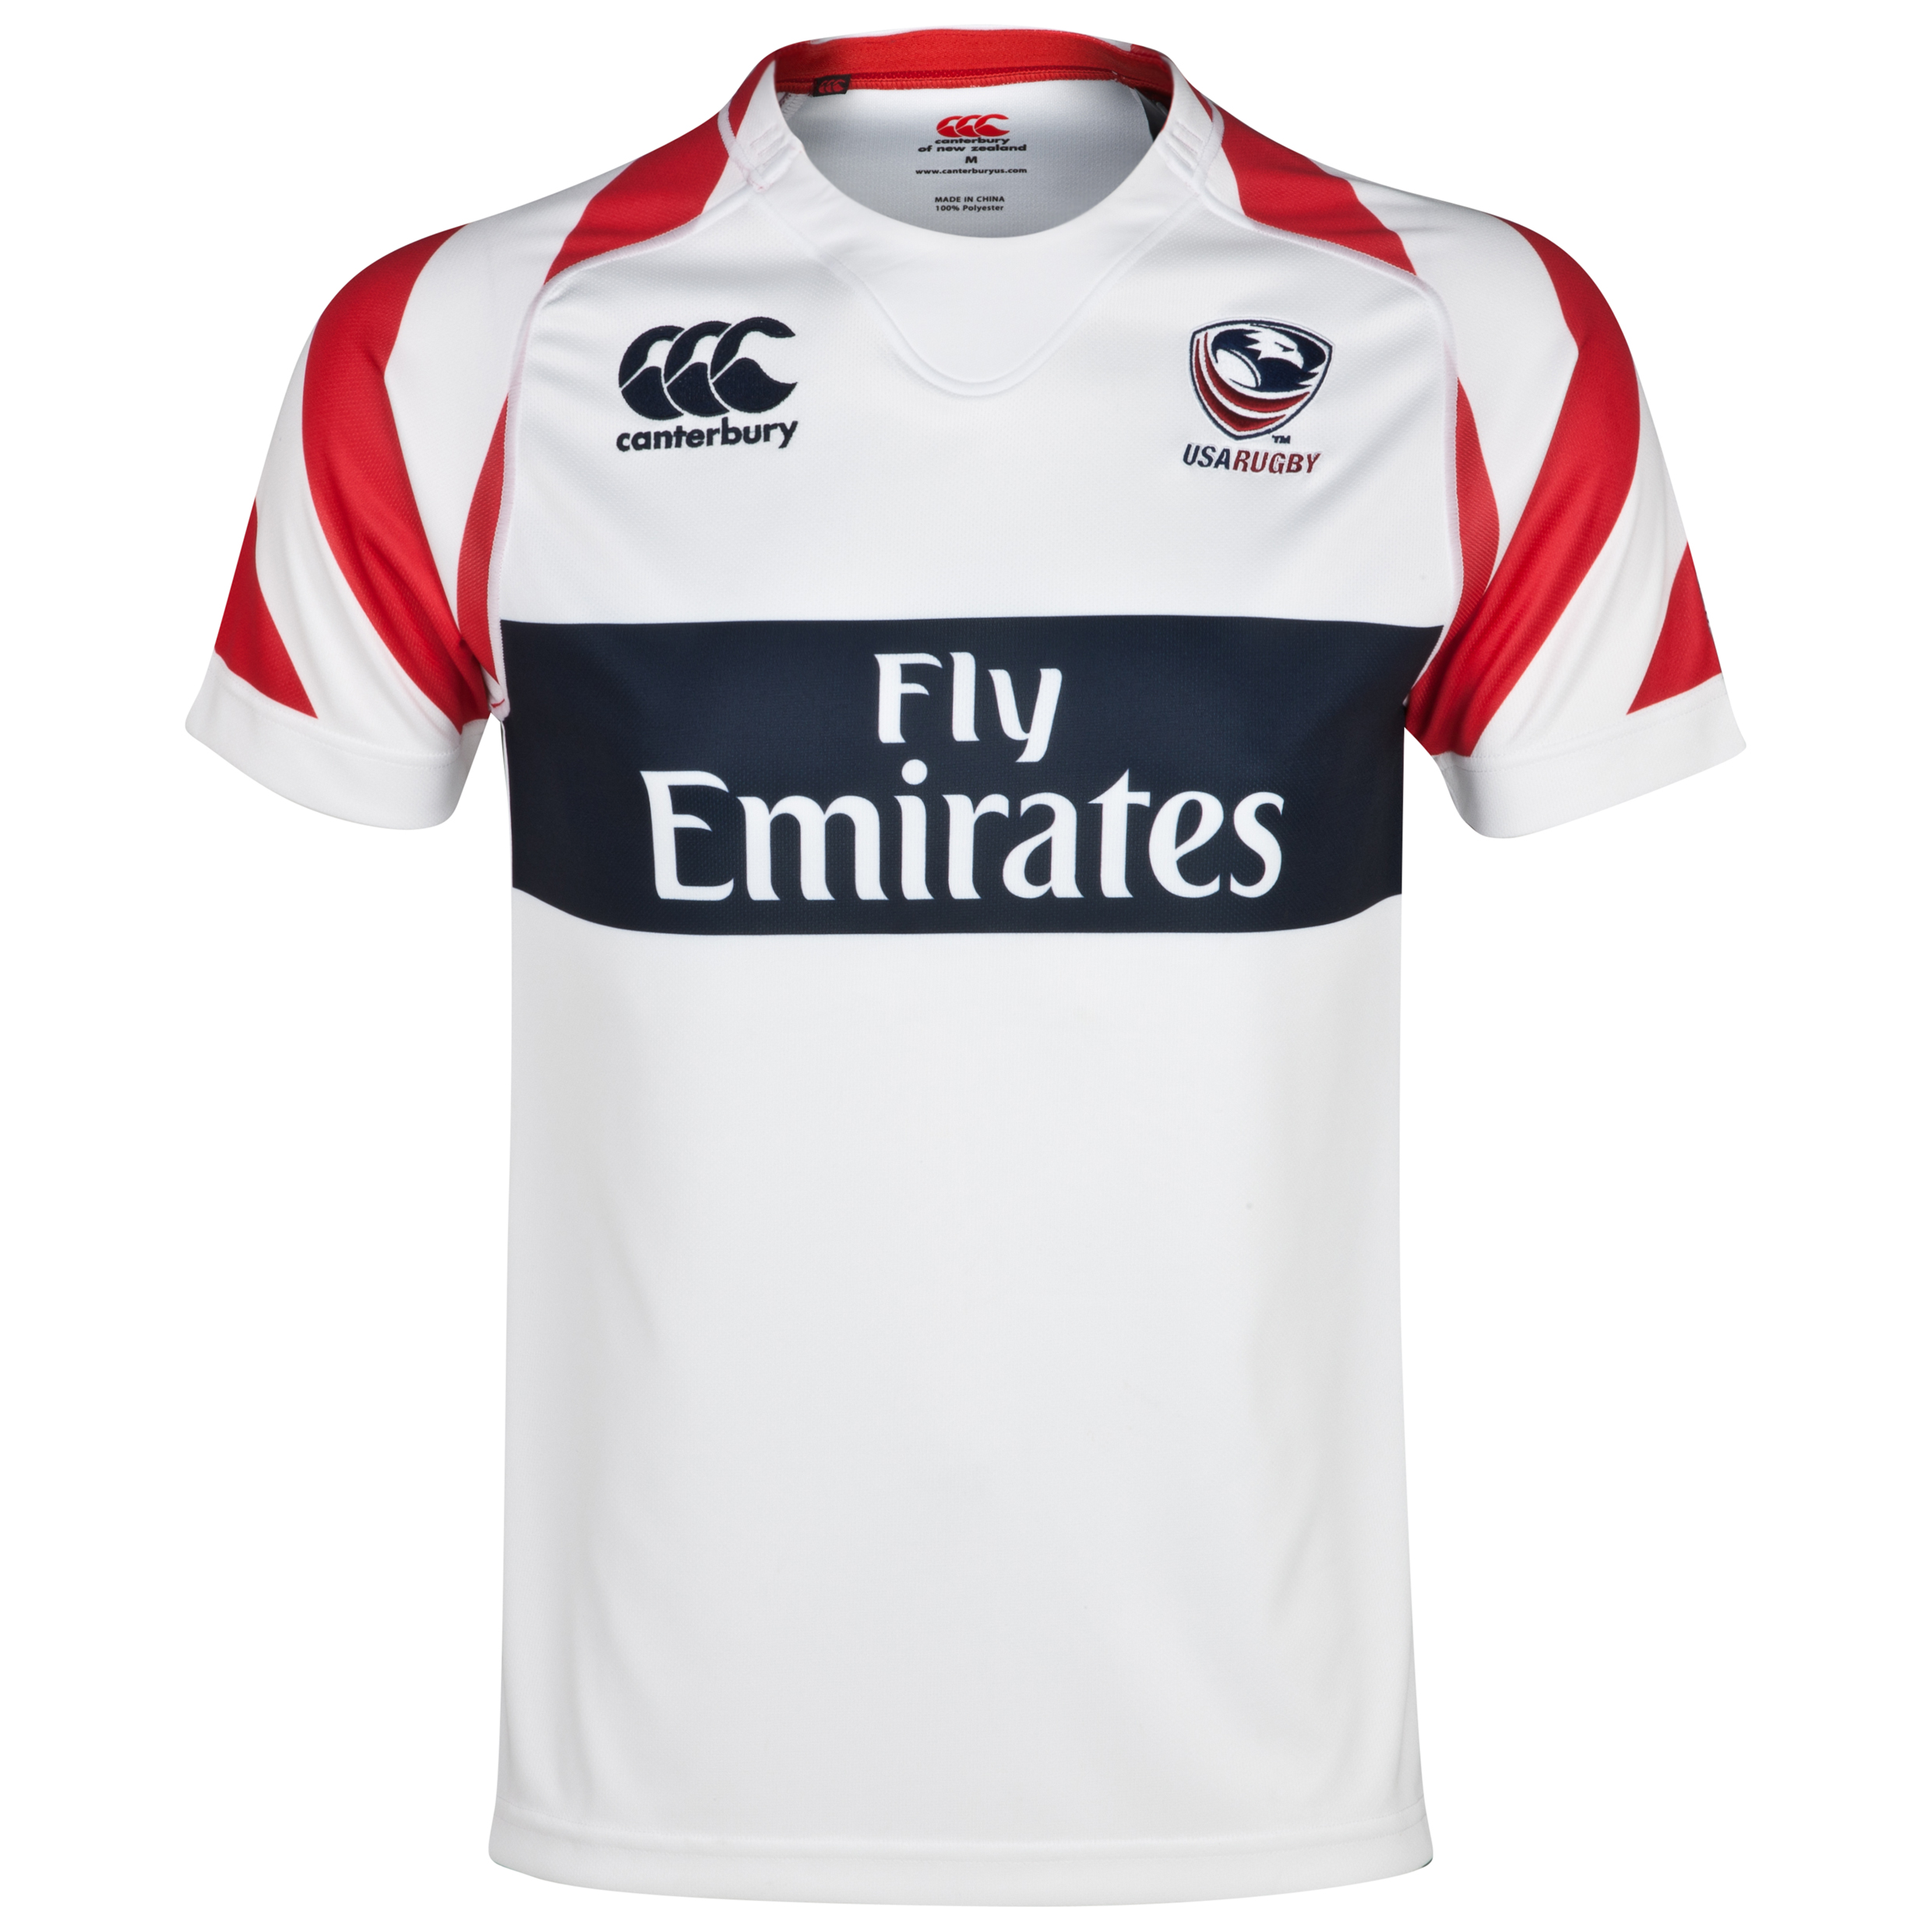 USA Eagles Home 7inchs Rugby Pro Shirt 2013/14